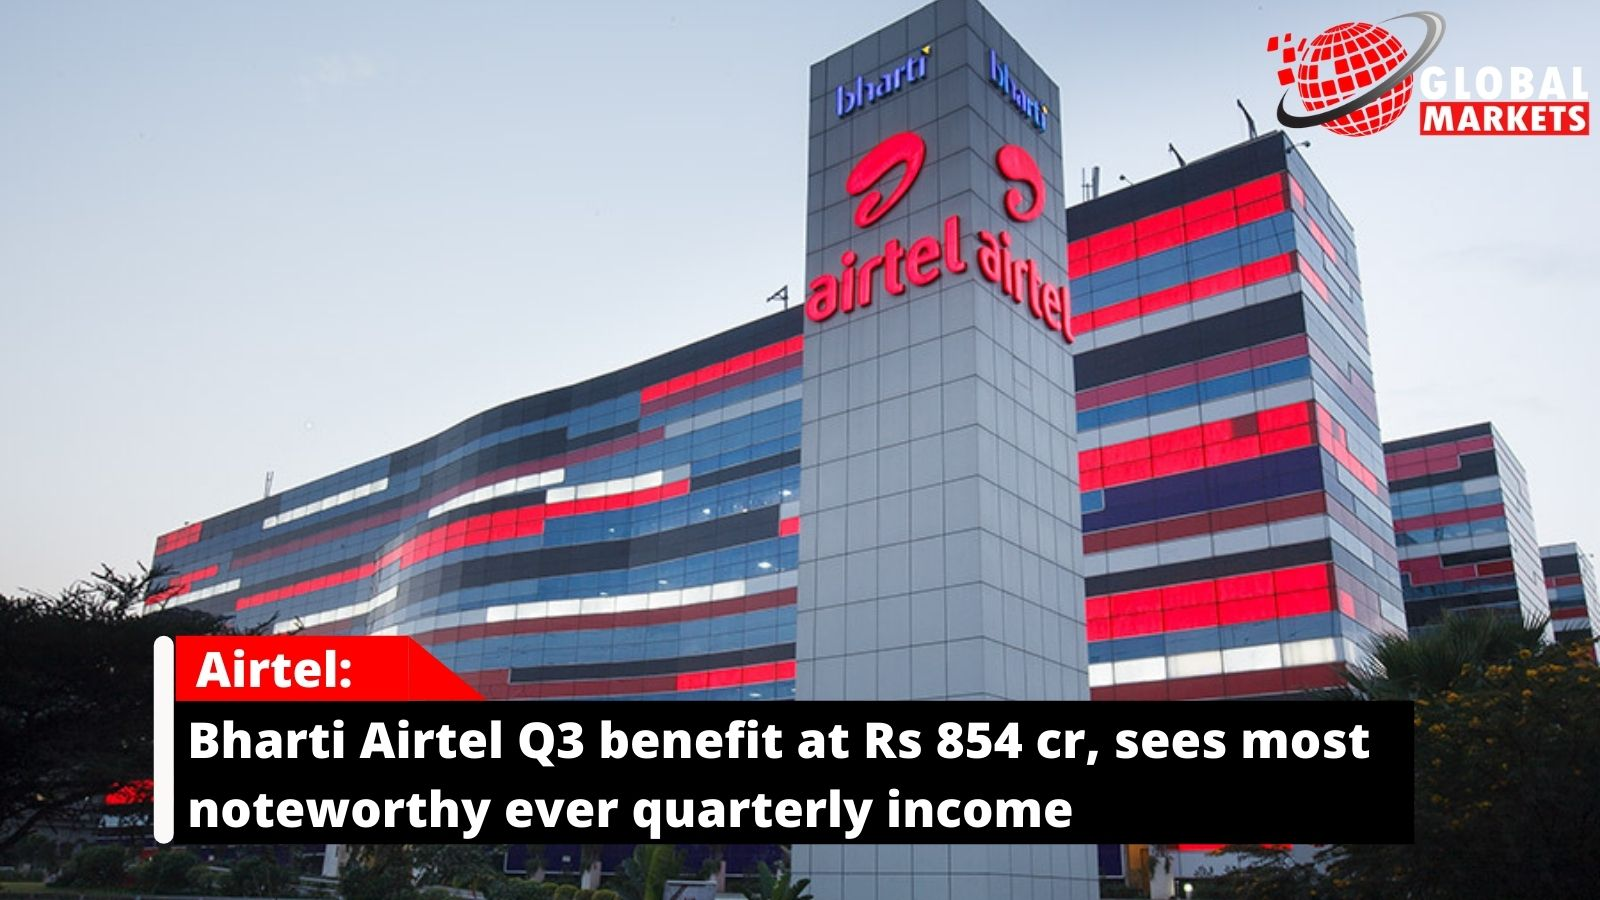 Bharti Airtel Q3 benefit at Rs 854 cr, sees most noteworthy ever quarterly income